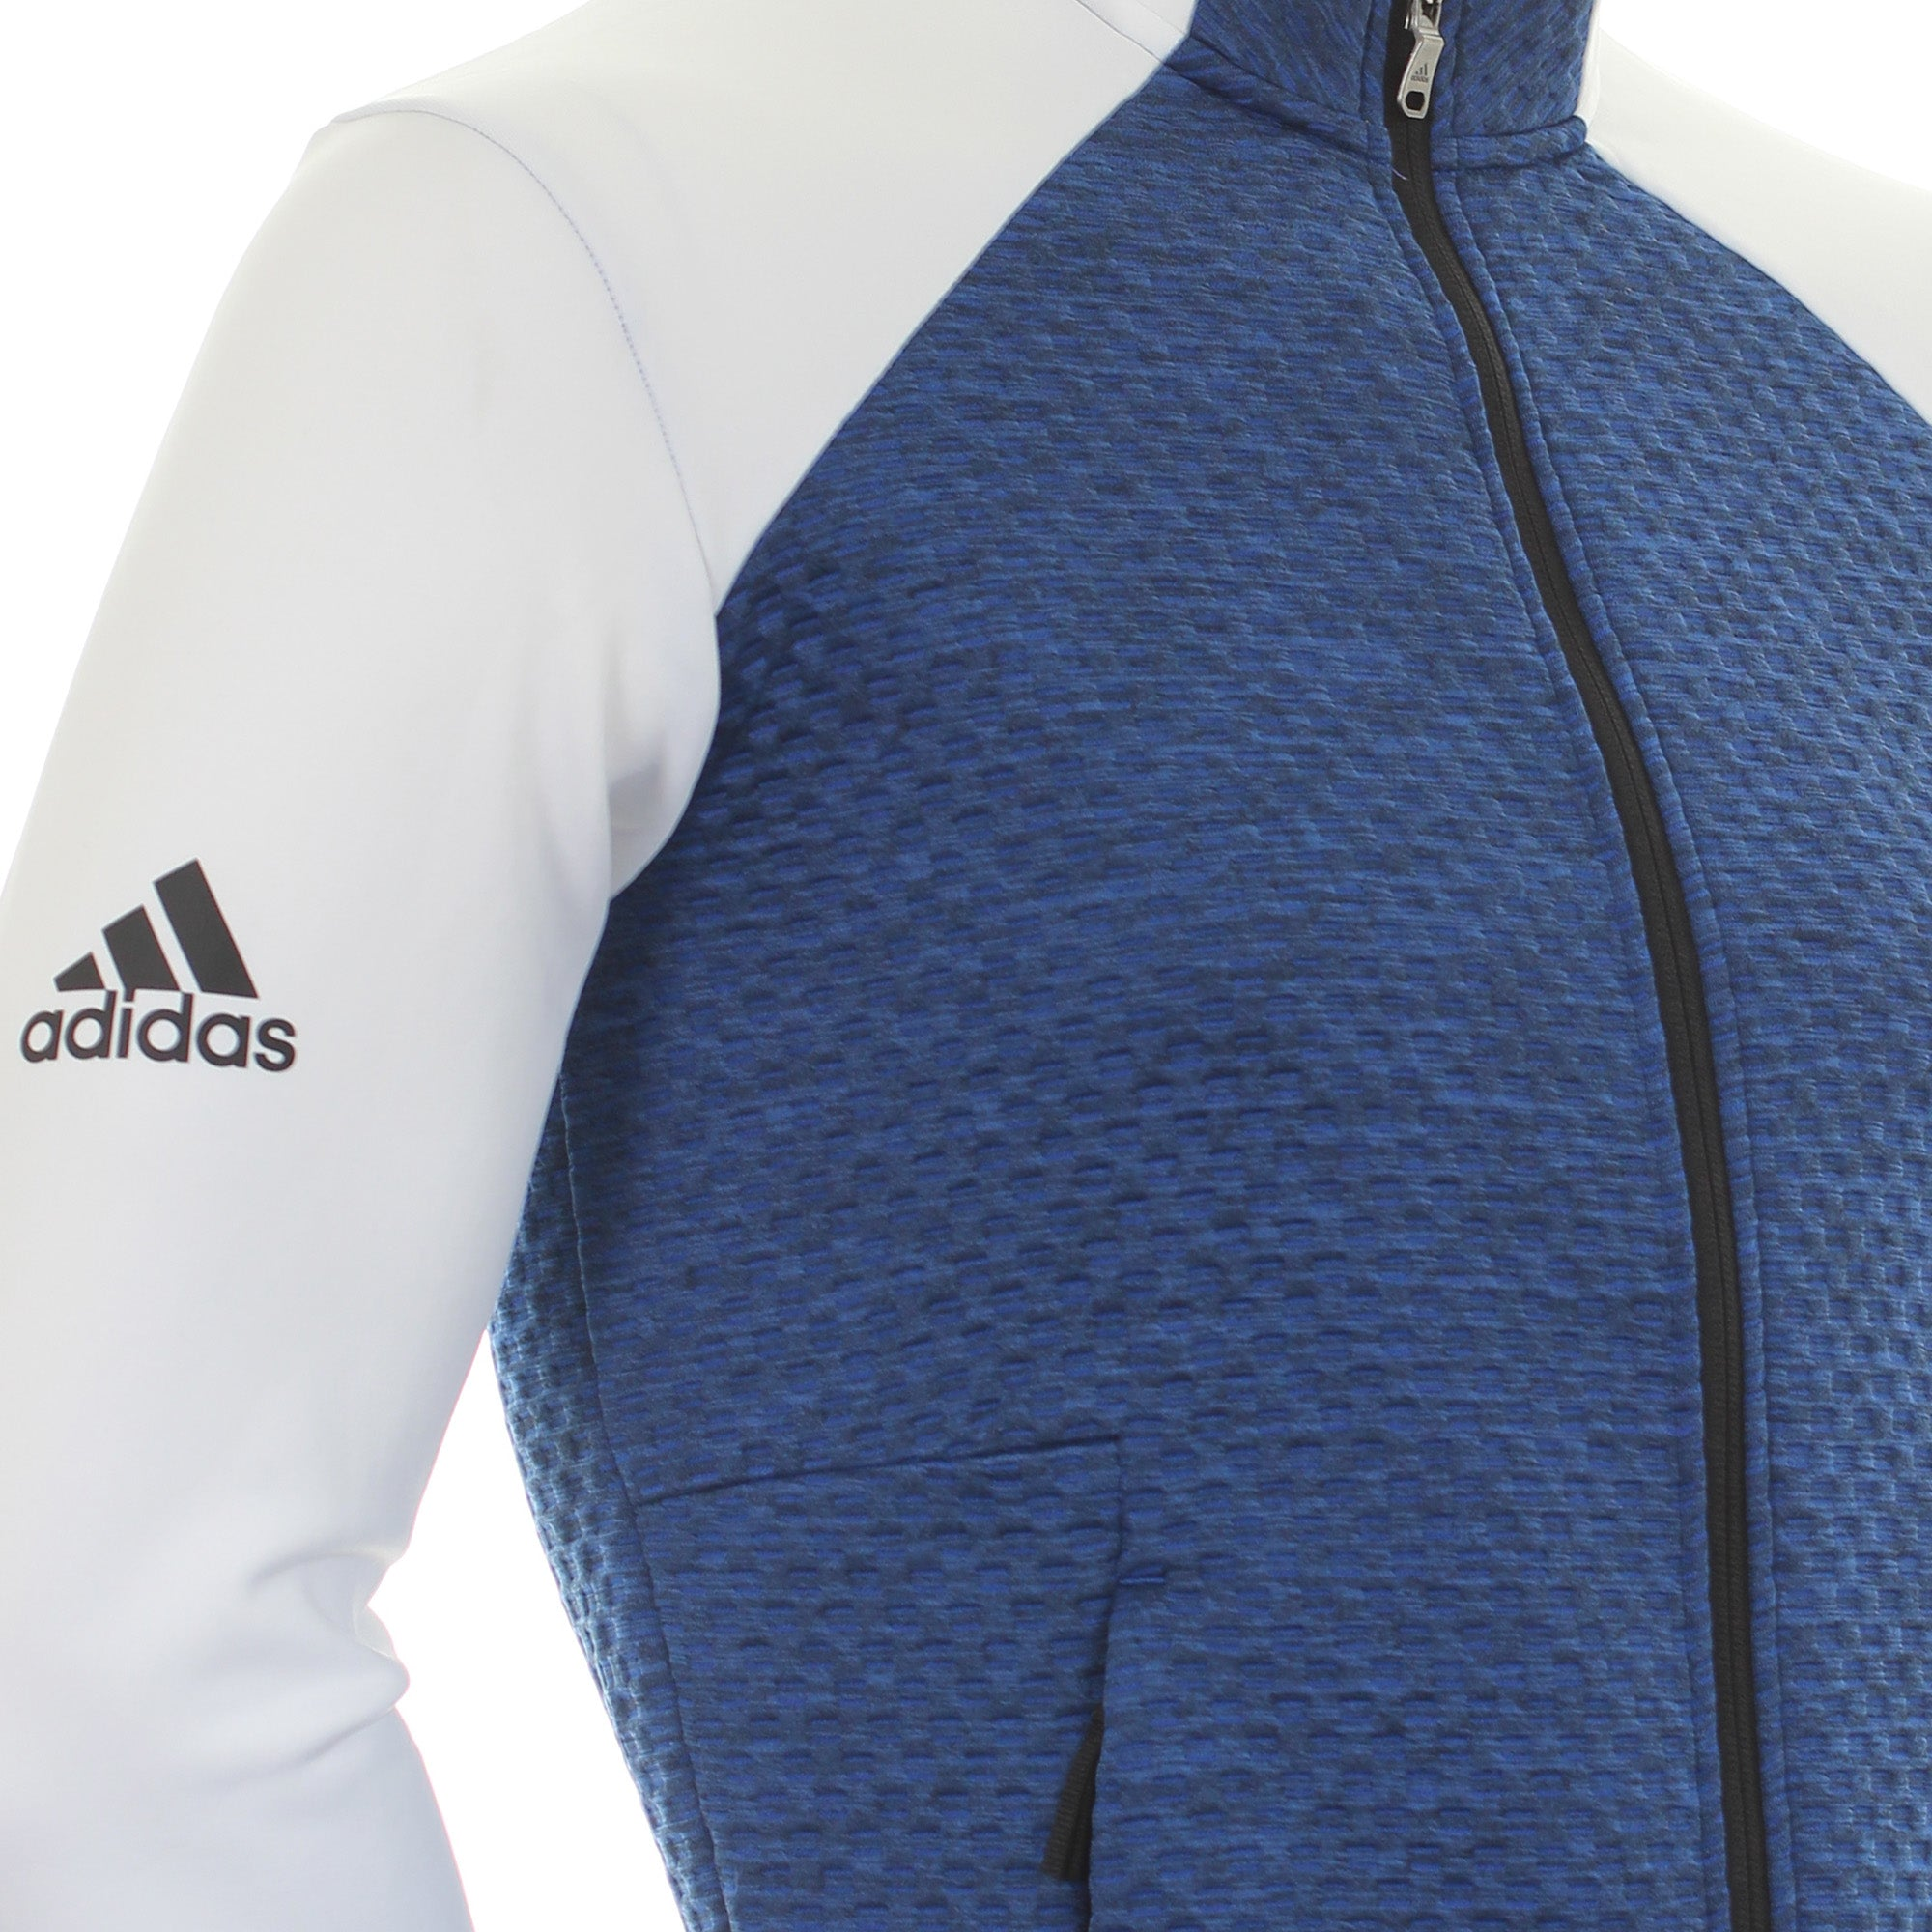 adidas Golf COLD.RDY Full Zip Jacket